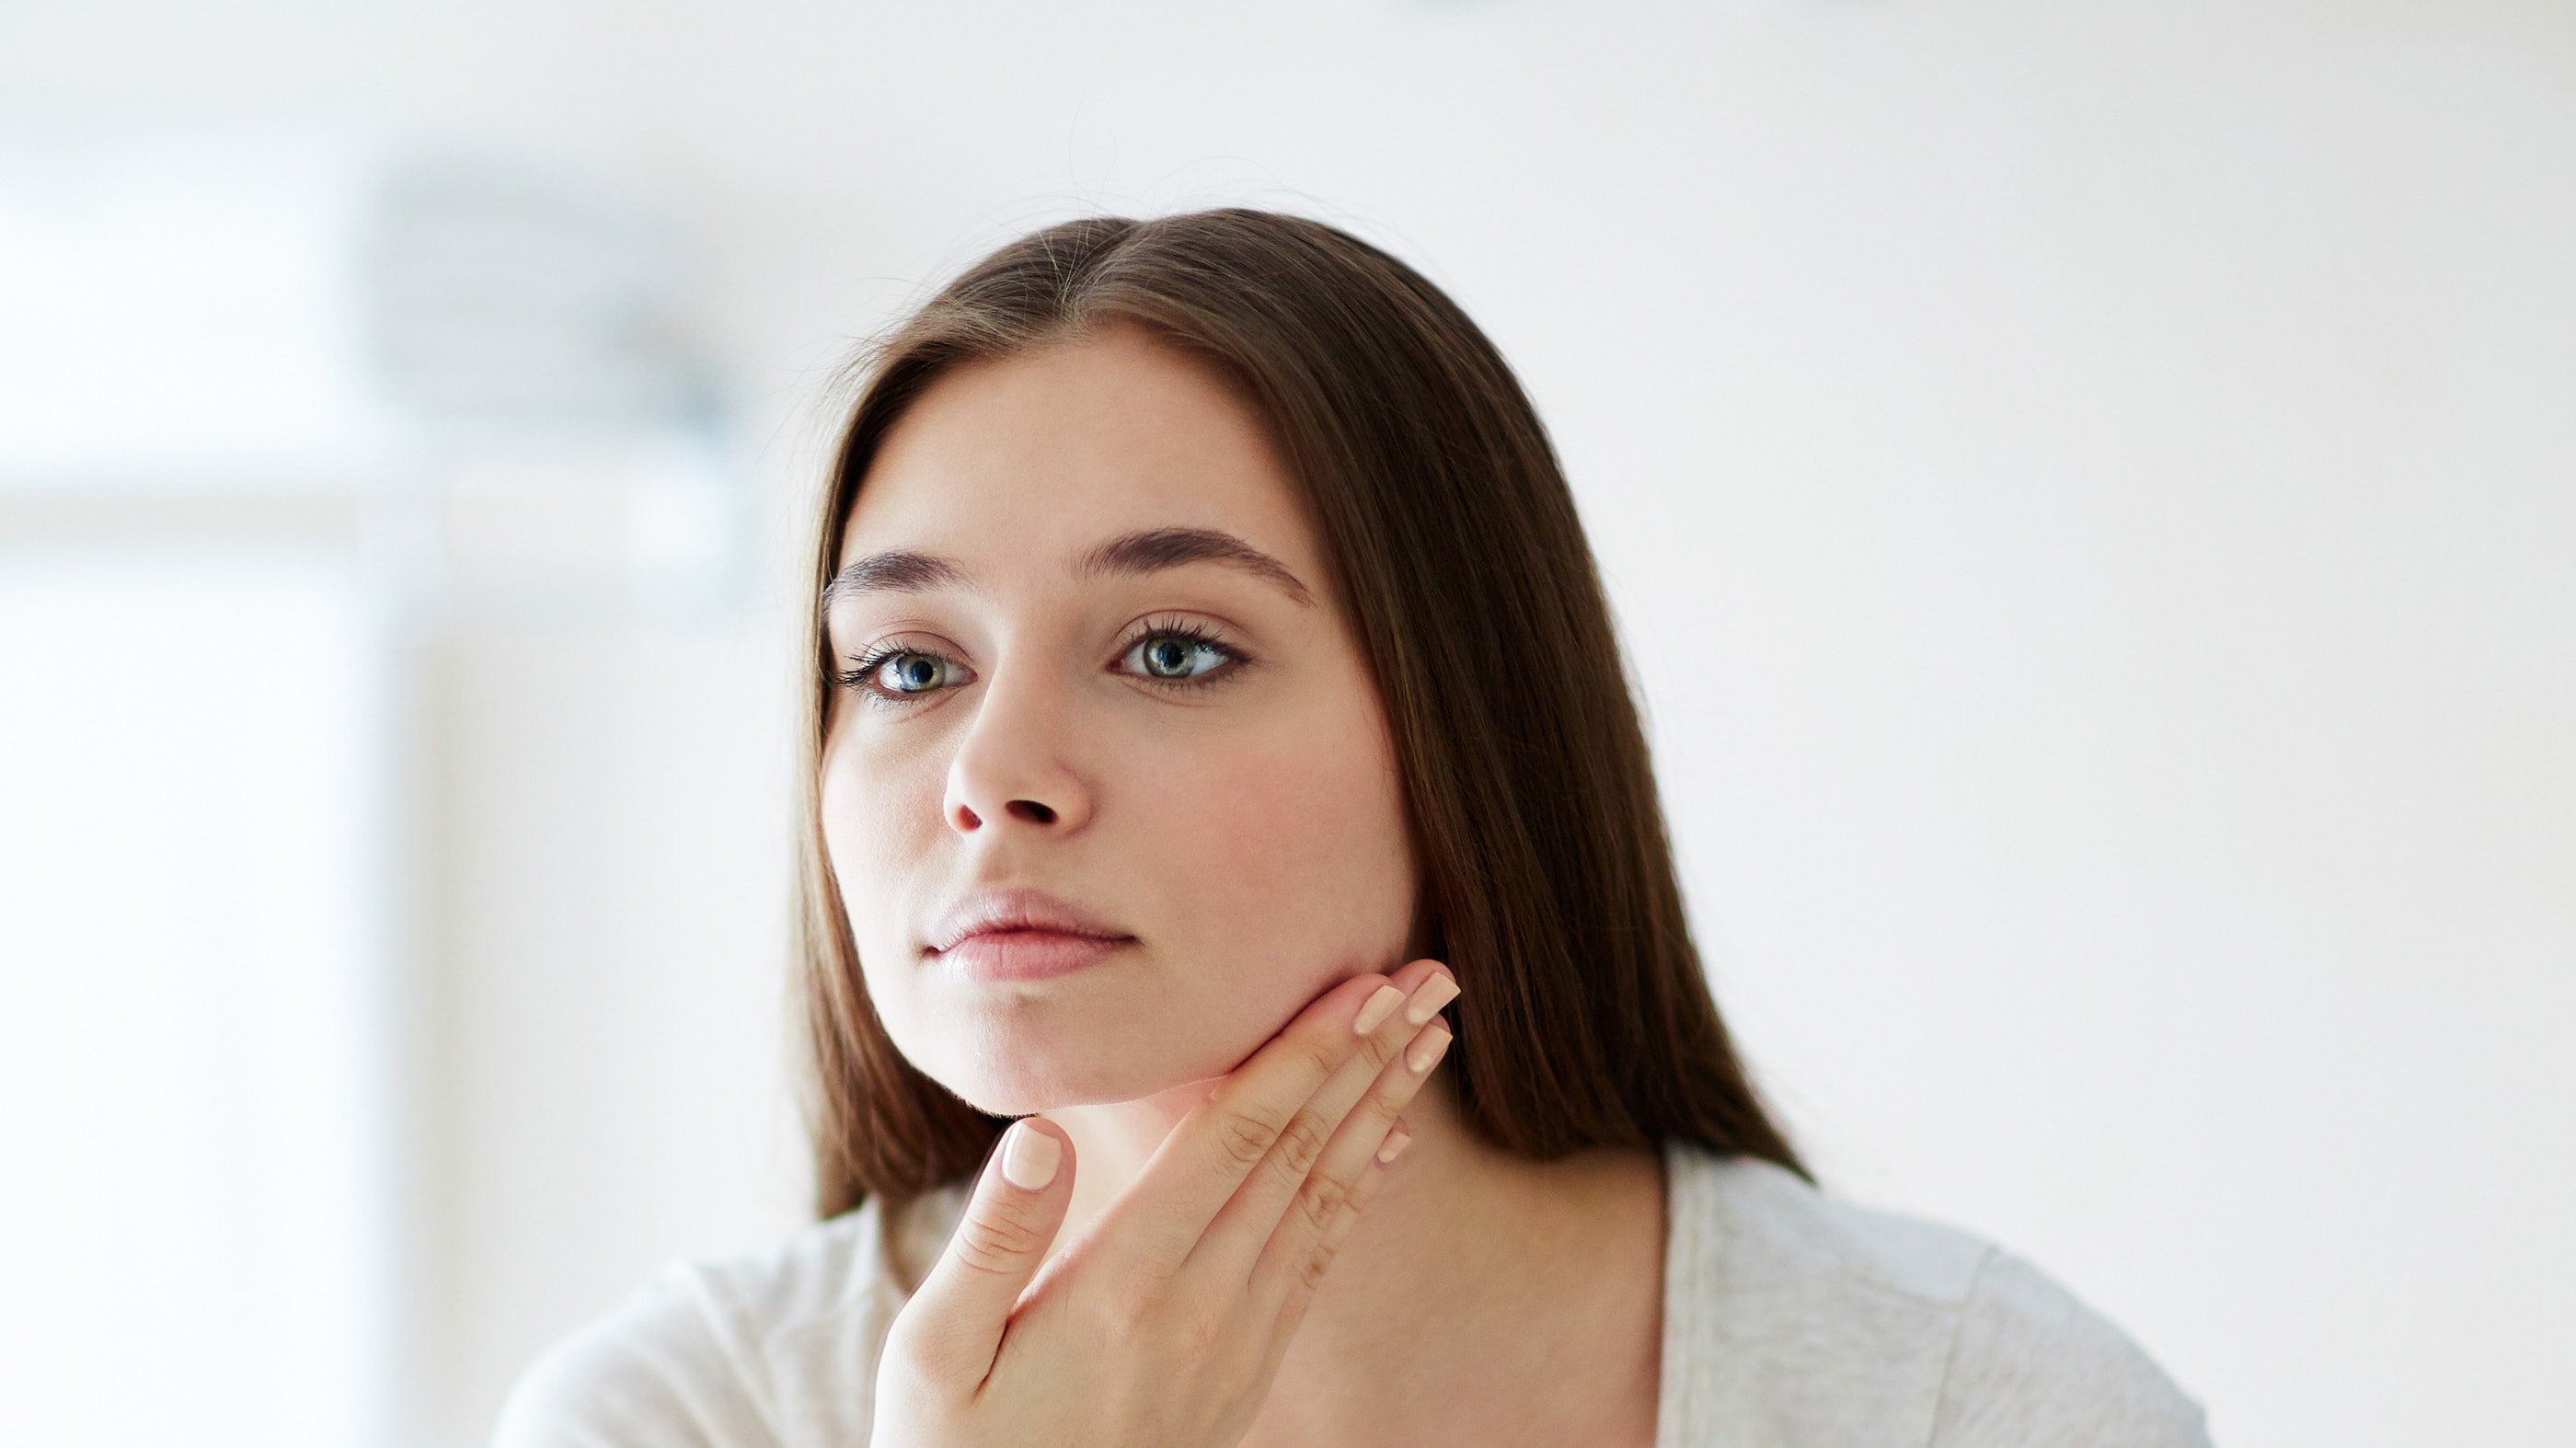 woman looking into a mirror, possibly considering at-home beauty products